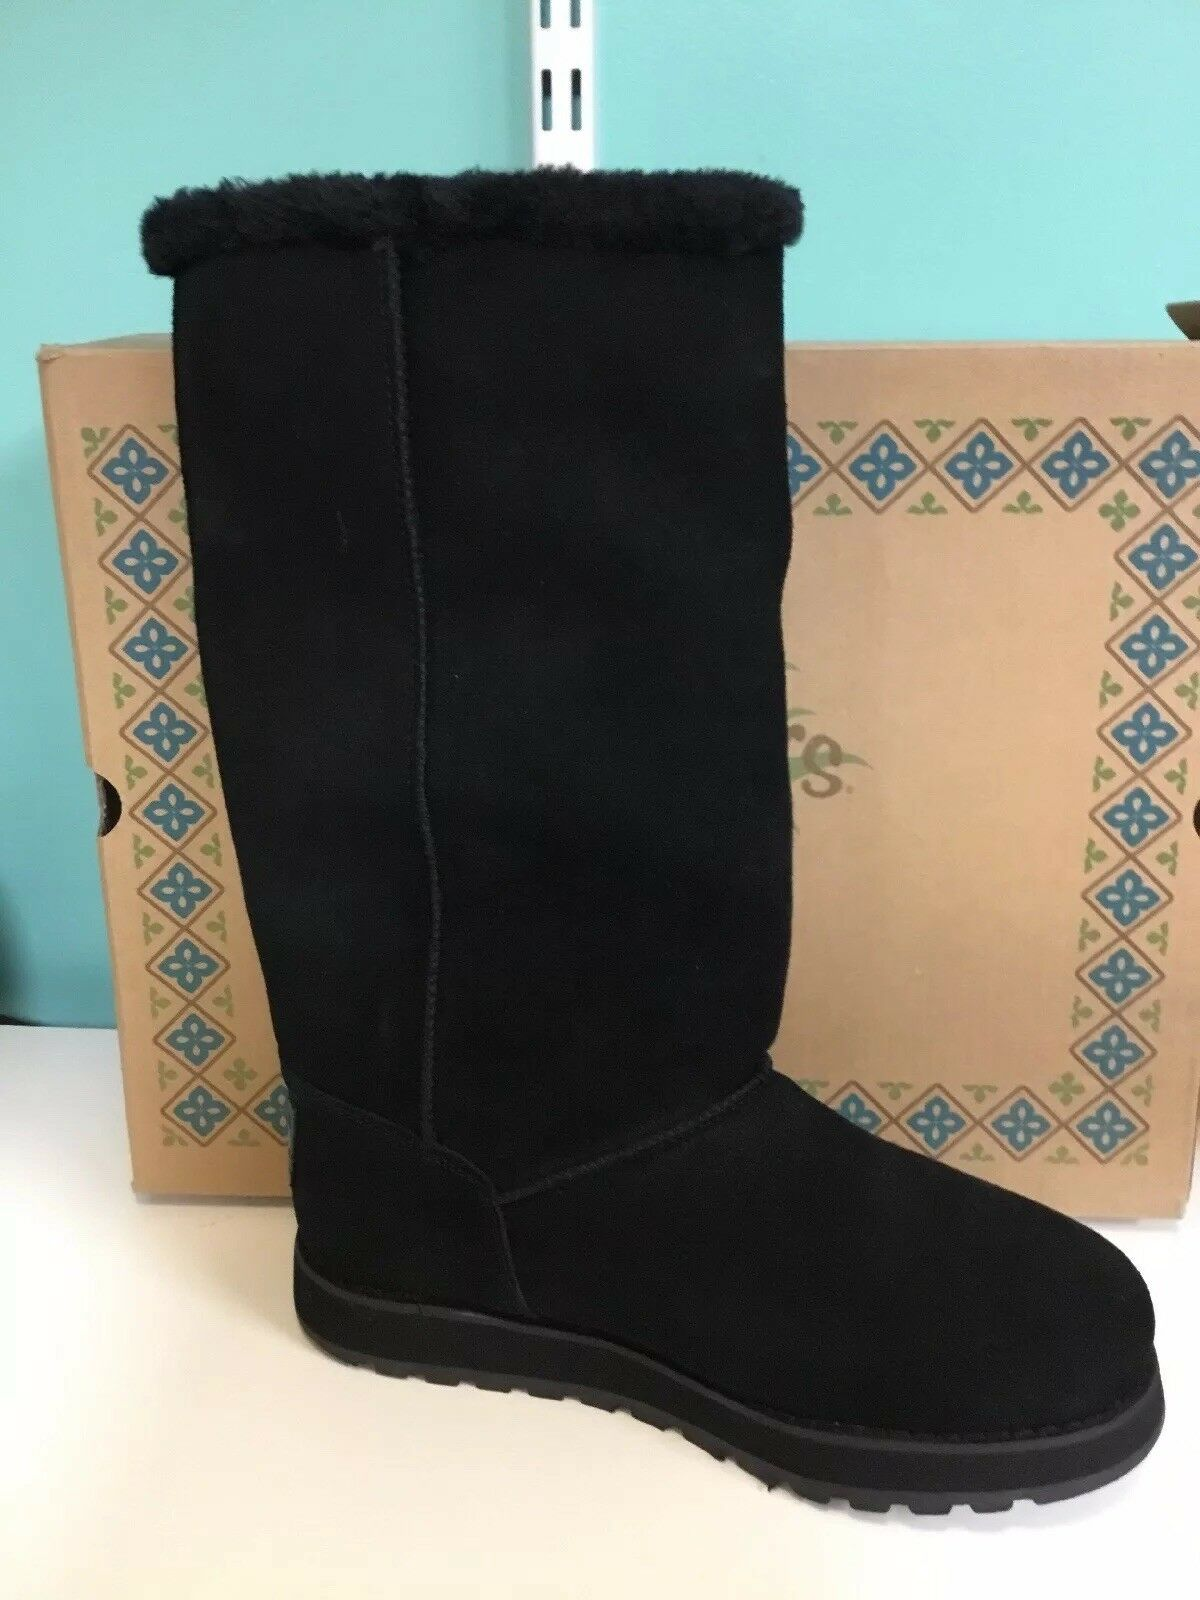 Women's Skechers Boots - Keepsakes-Conceal - Black - - -  48363 - New  Size 6 04890e